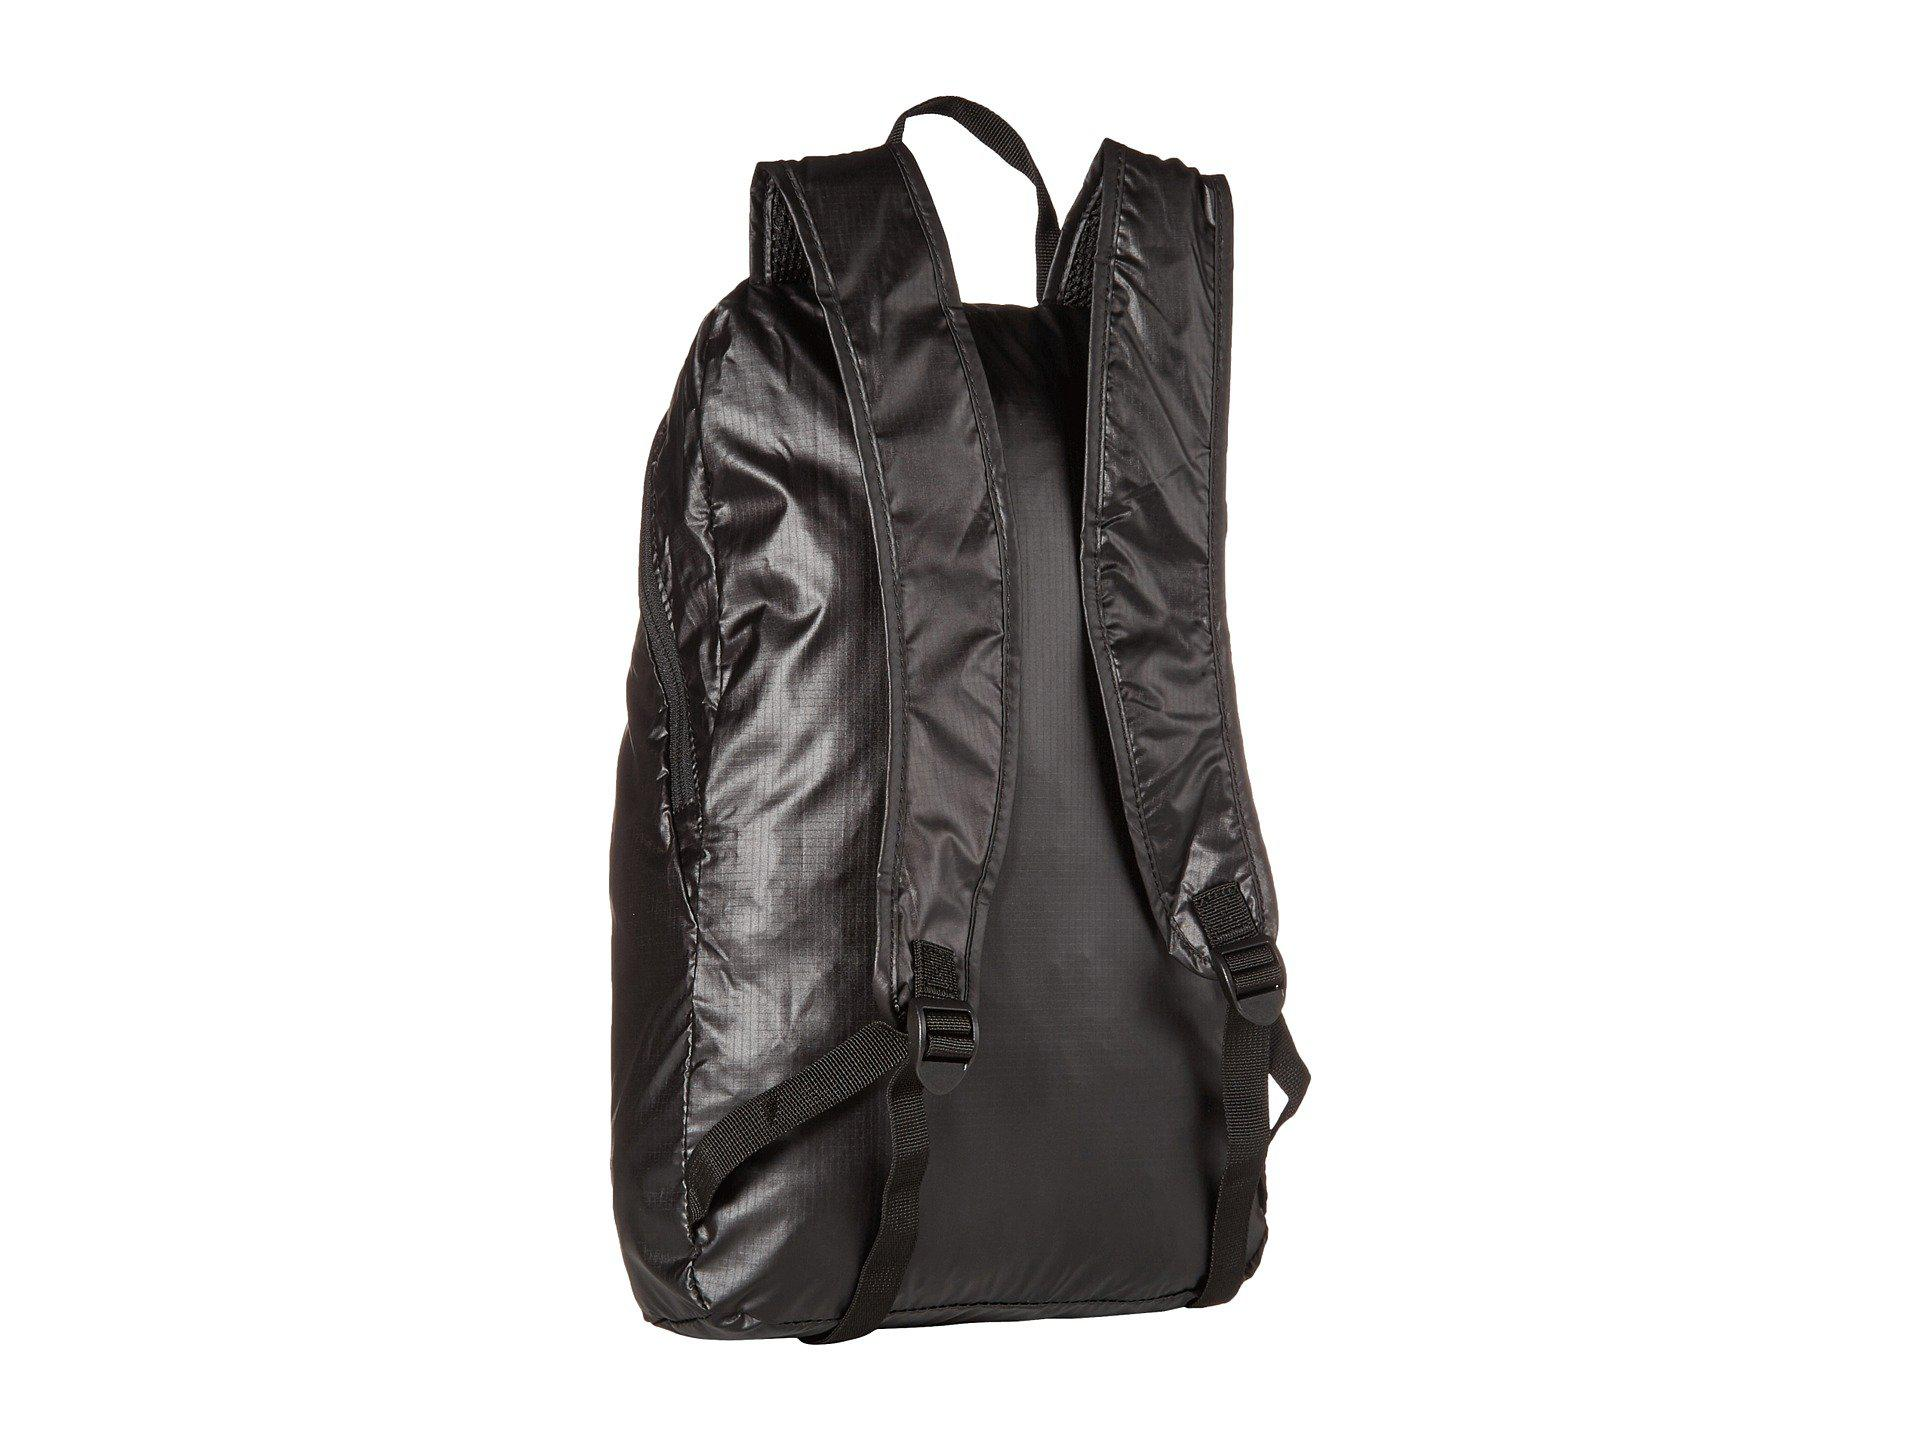 7eb27a828b22 Lyst - Oakley Packable Backpack in Black for Men - Save 6%